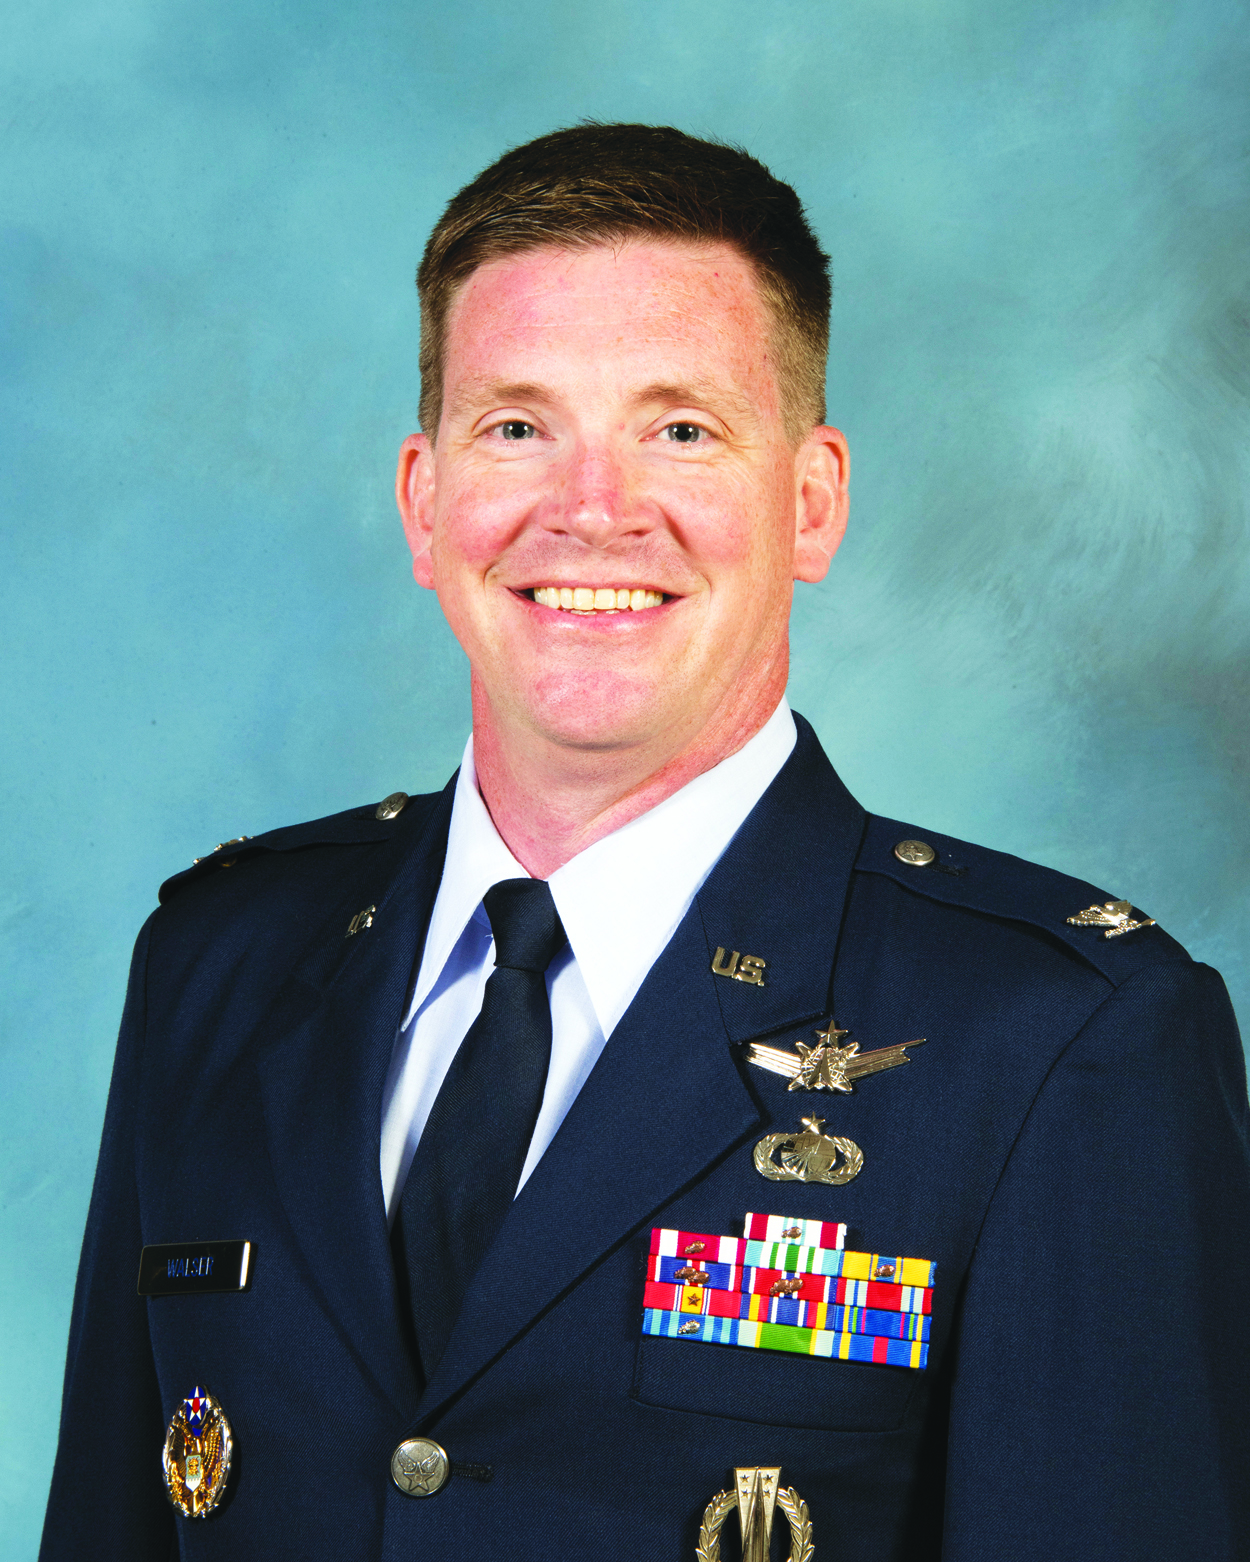 Regional Col Stacy Walser S Star Keeps Climbing In The Air Force The Stanly News Press The Stanly News Press Join facebook to connect with stacy vandenberg and others you may know. col stacy walser s star keeps climbing